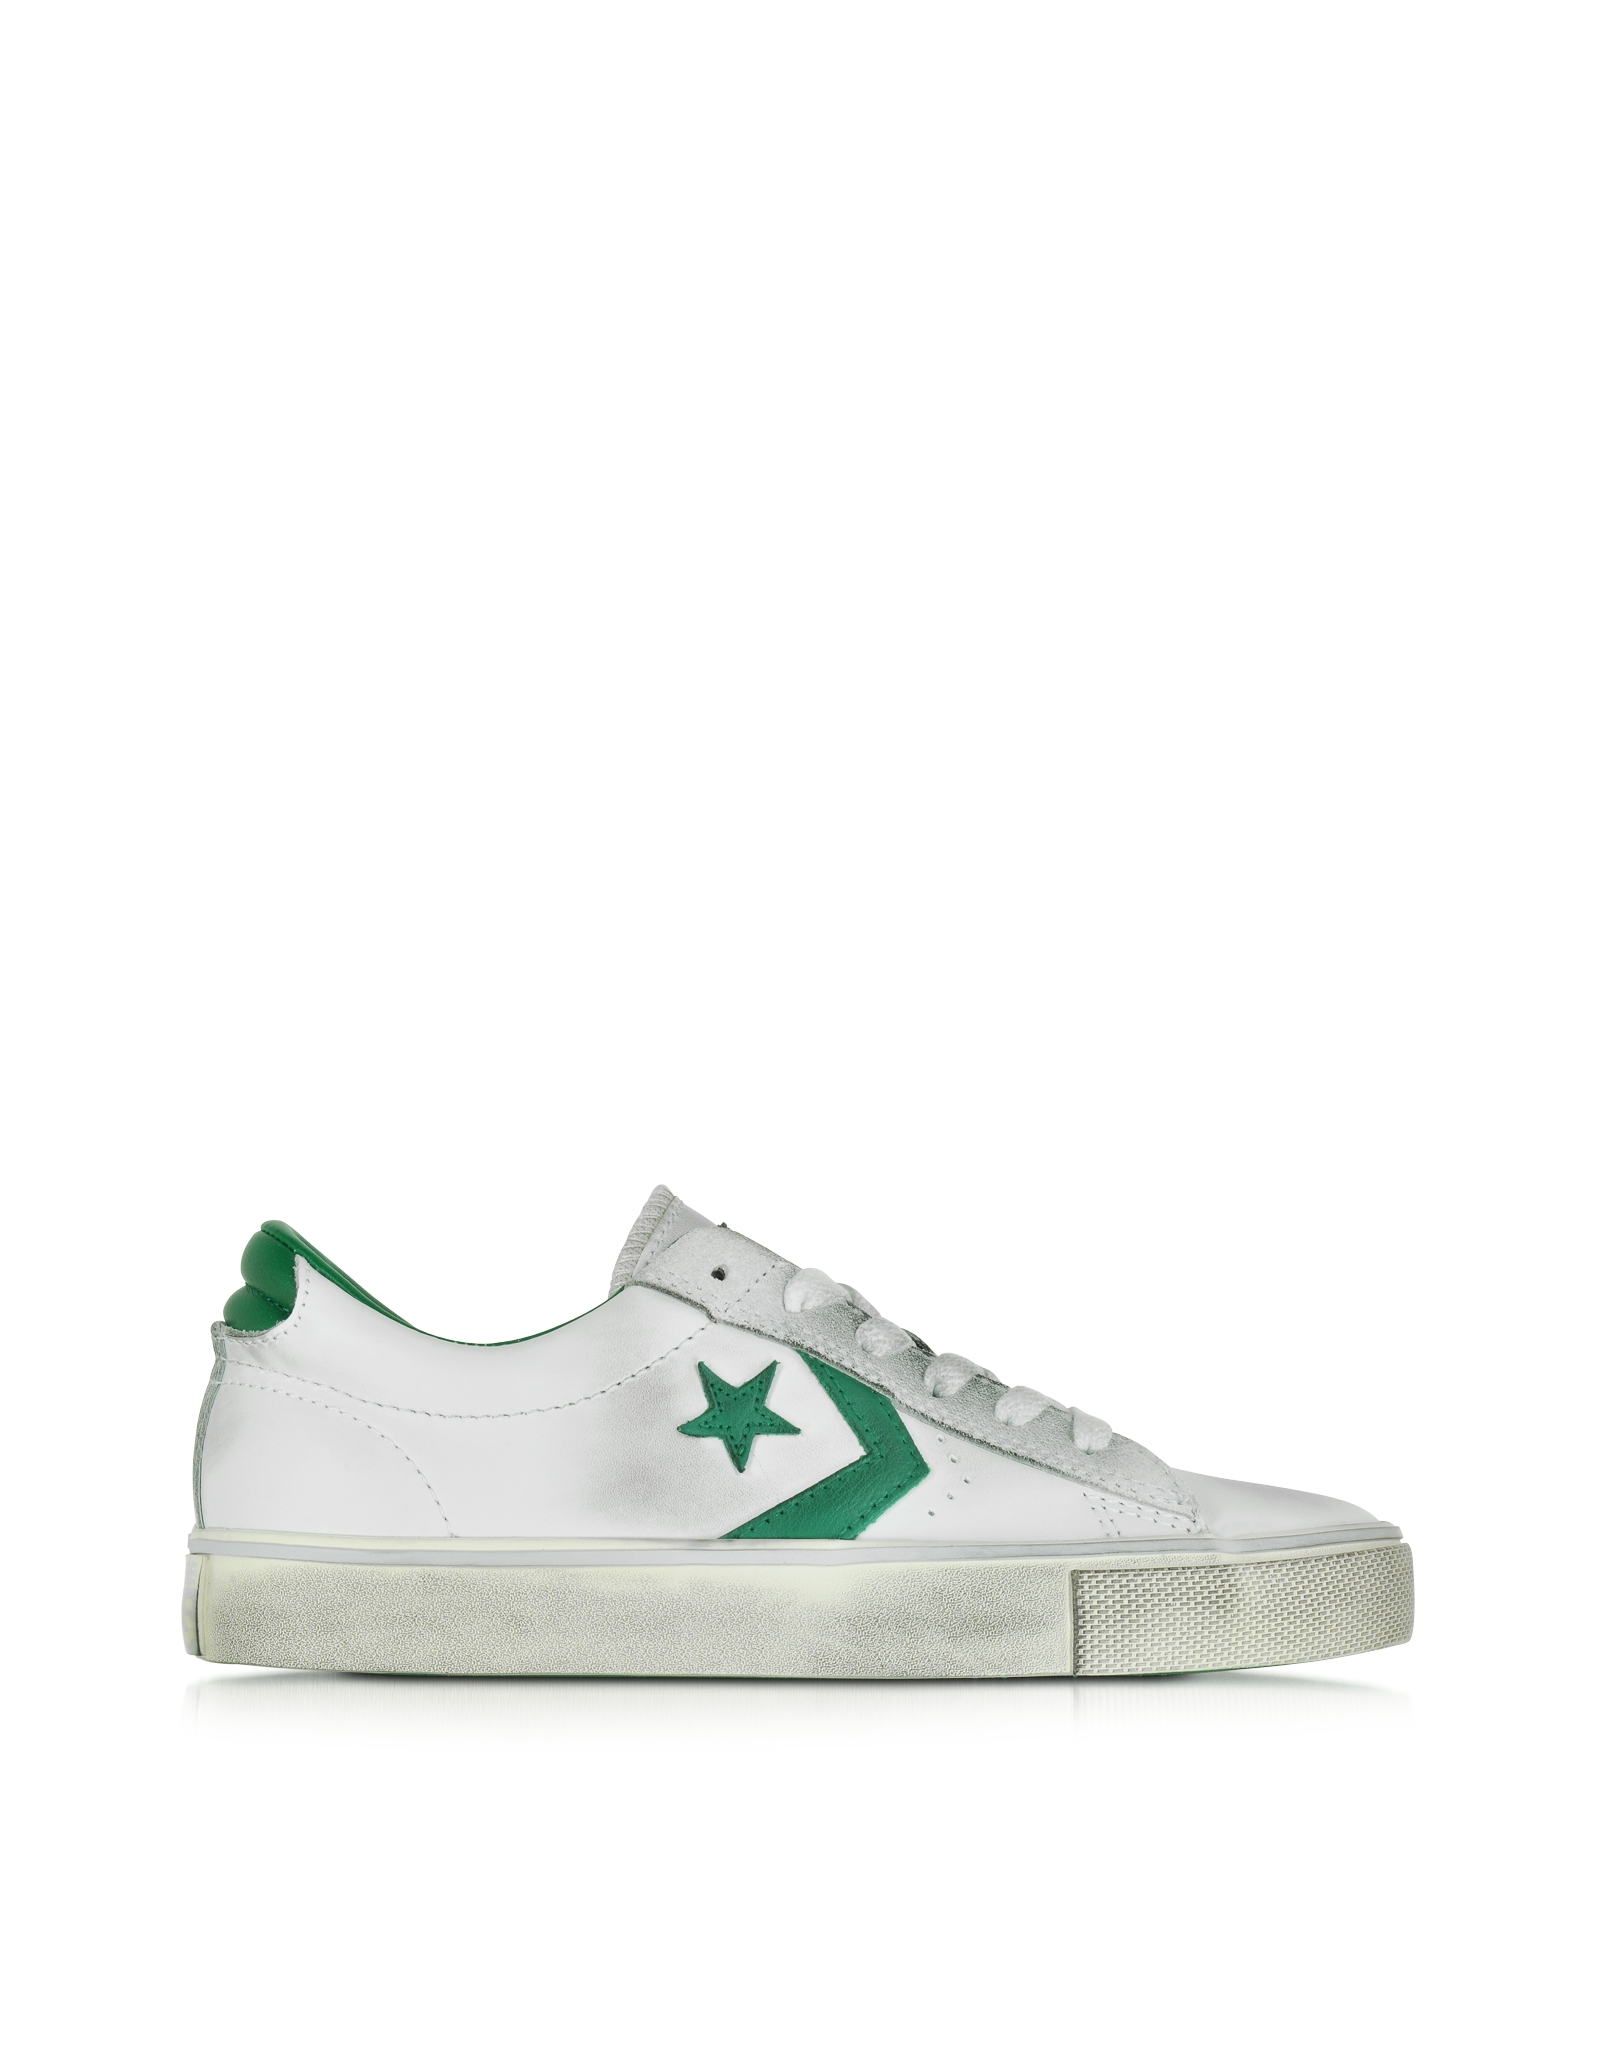 316690d1e9 Converse Pro Leather Vulc Ox Off White Distressed Leather Unisex ...